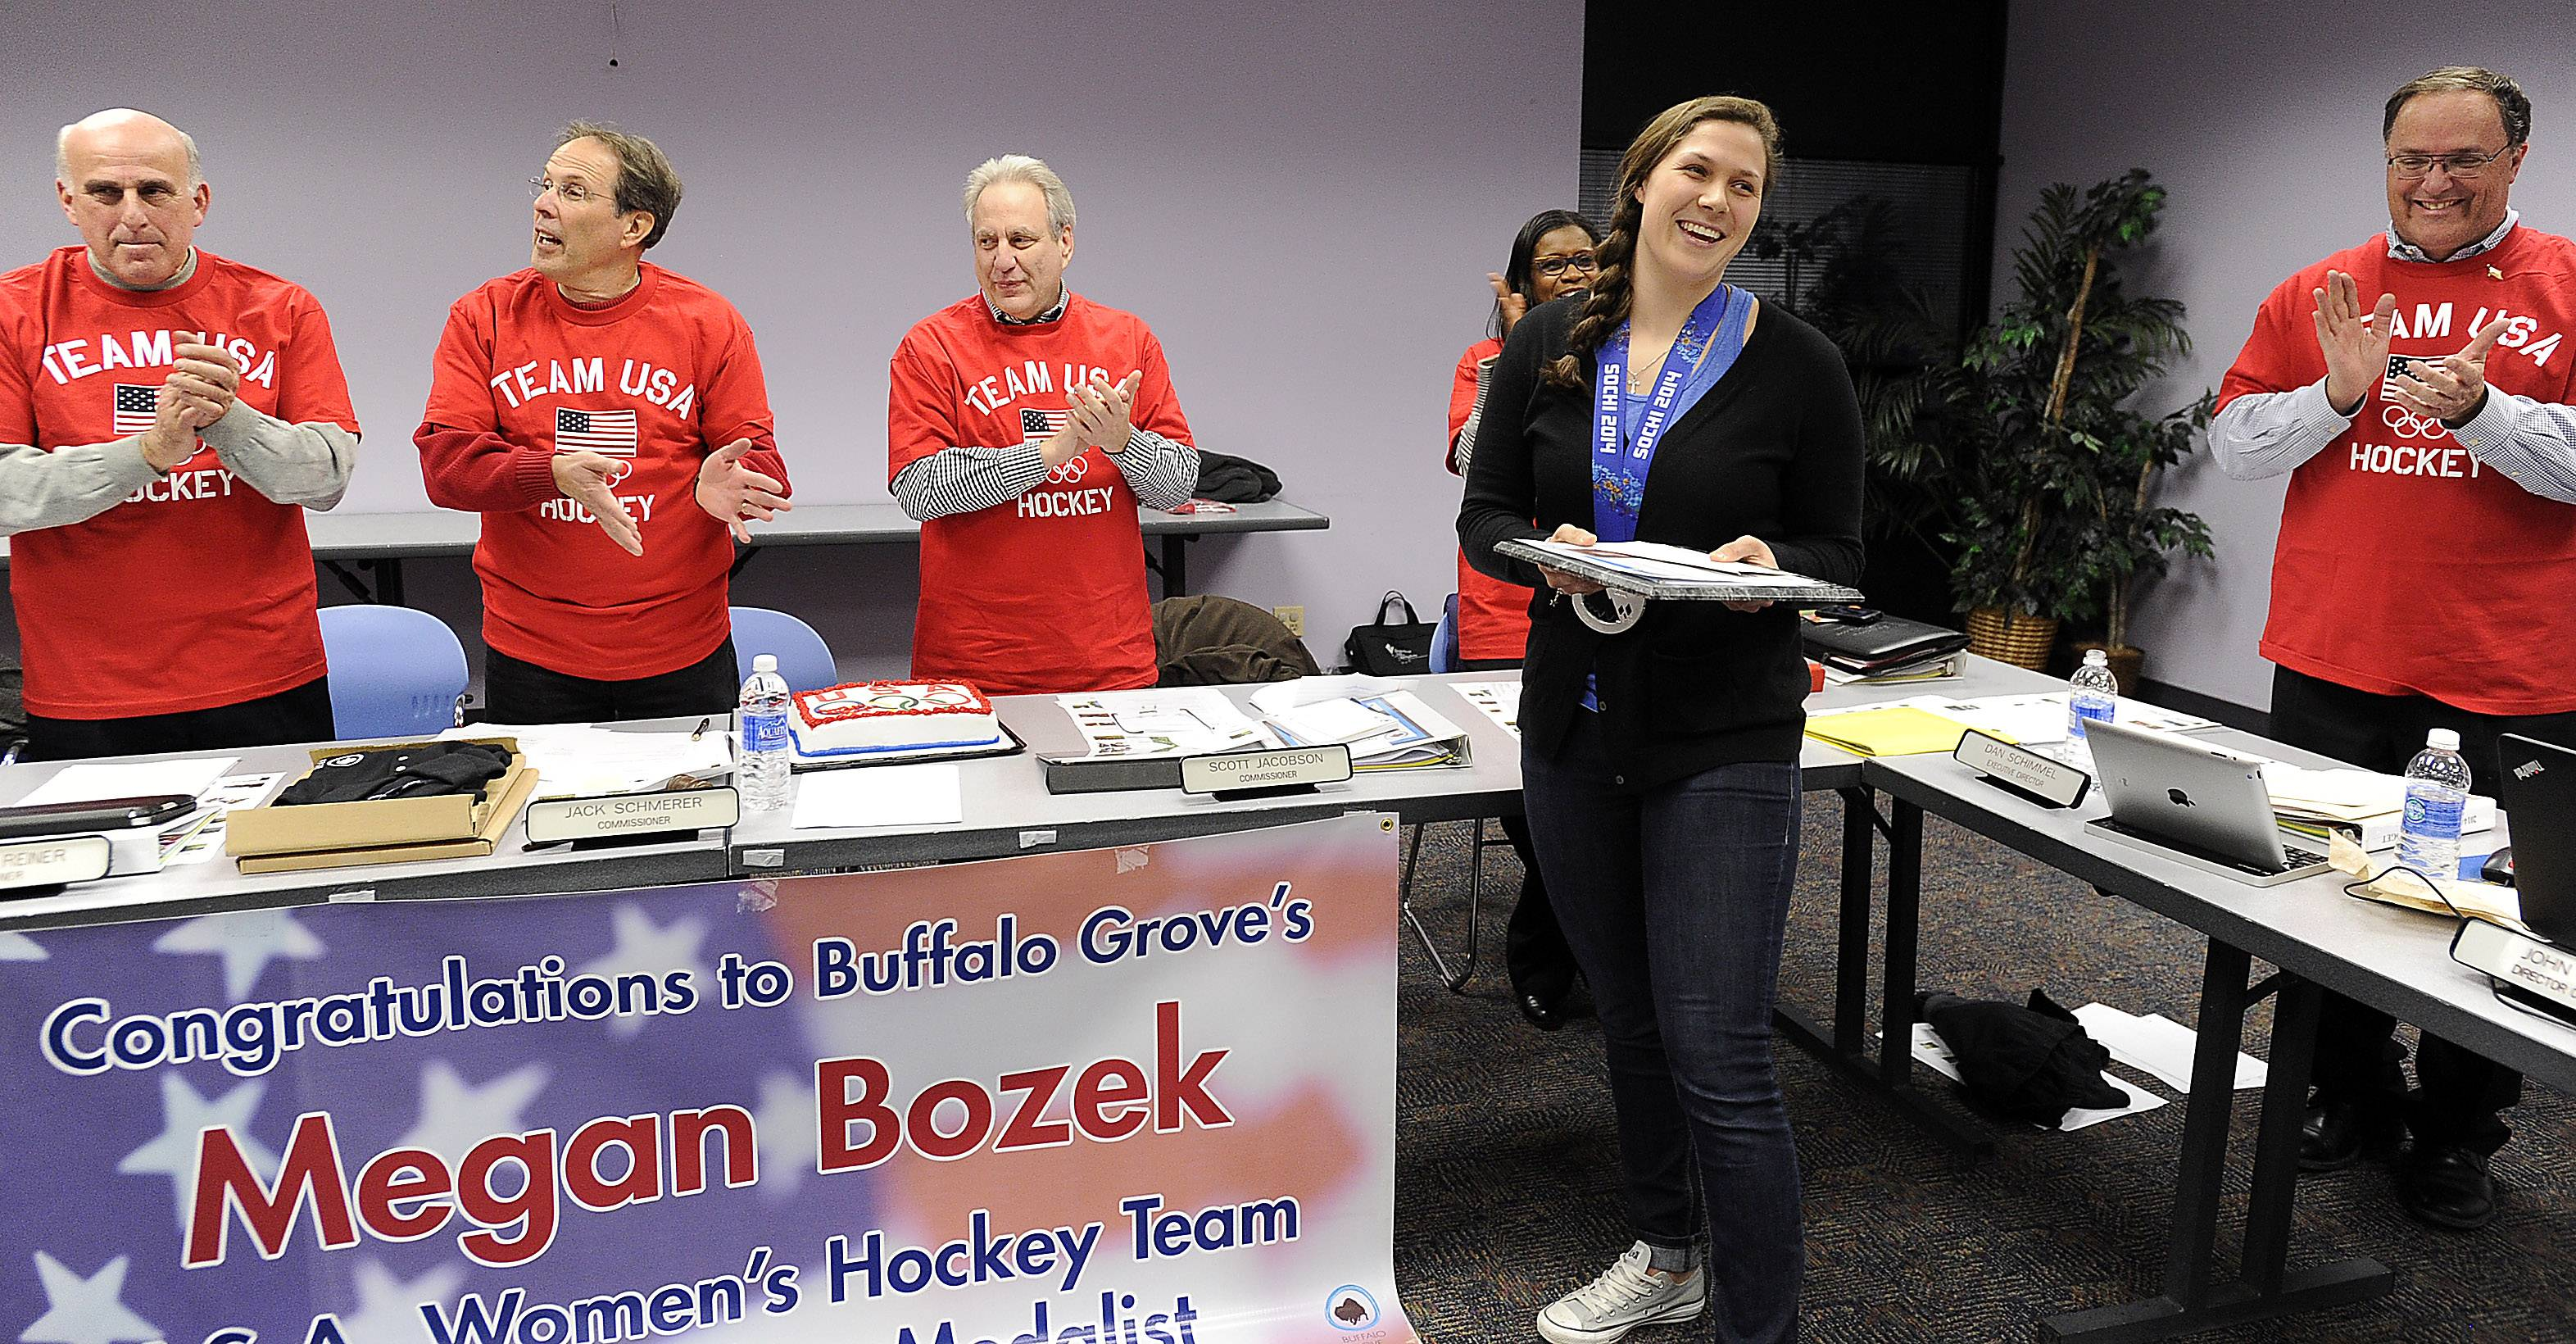 Buffalo Grove resident Megan Bozek is greeted by the members of the Buffalo Grove Park District where she proudly displayed her silver medal she won on the Winter Olympics hockey team in Sochi. She was honored for her achievements.